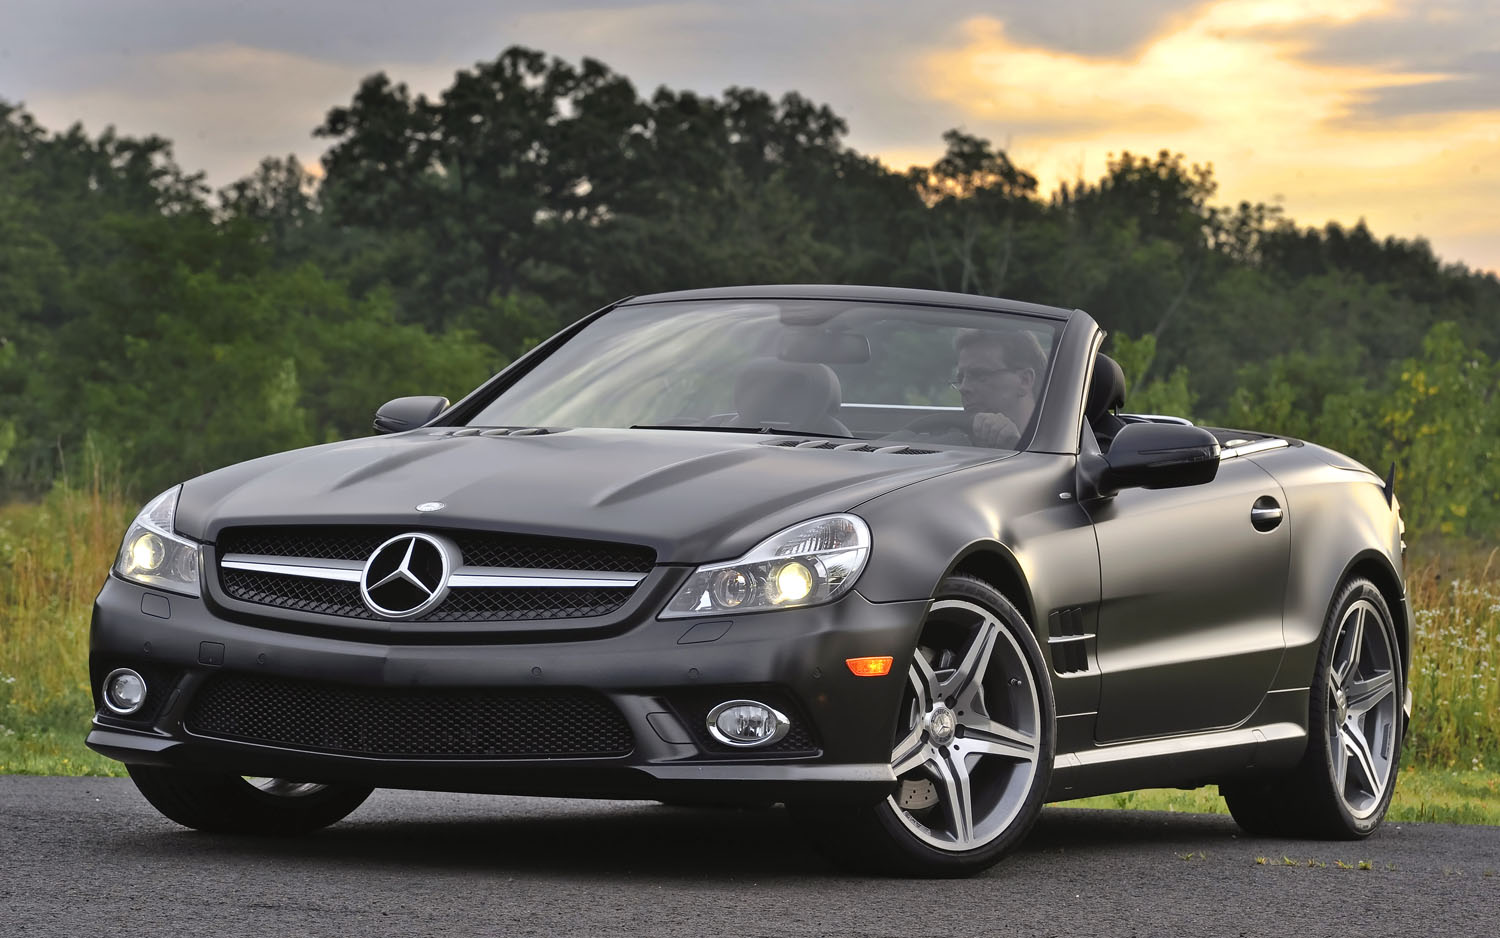 2011 Mercedes Benz Sl550 Convertible >> The Beginning of the End? 2012 Mercedes-Benz SL Loses 12-Cylinder Engine Options